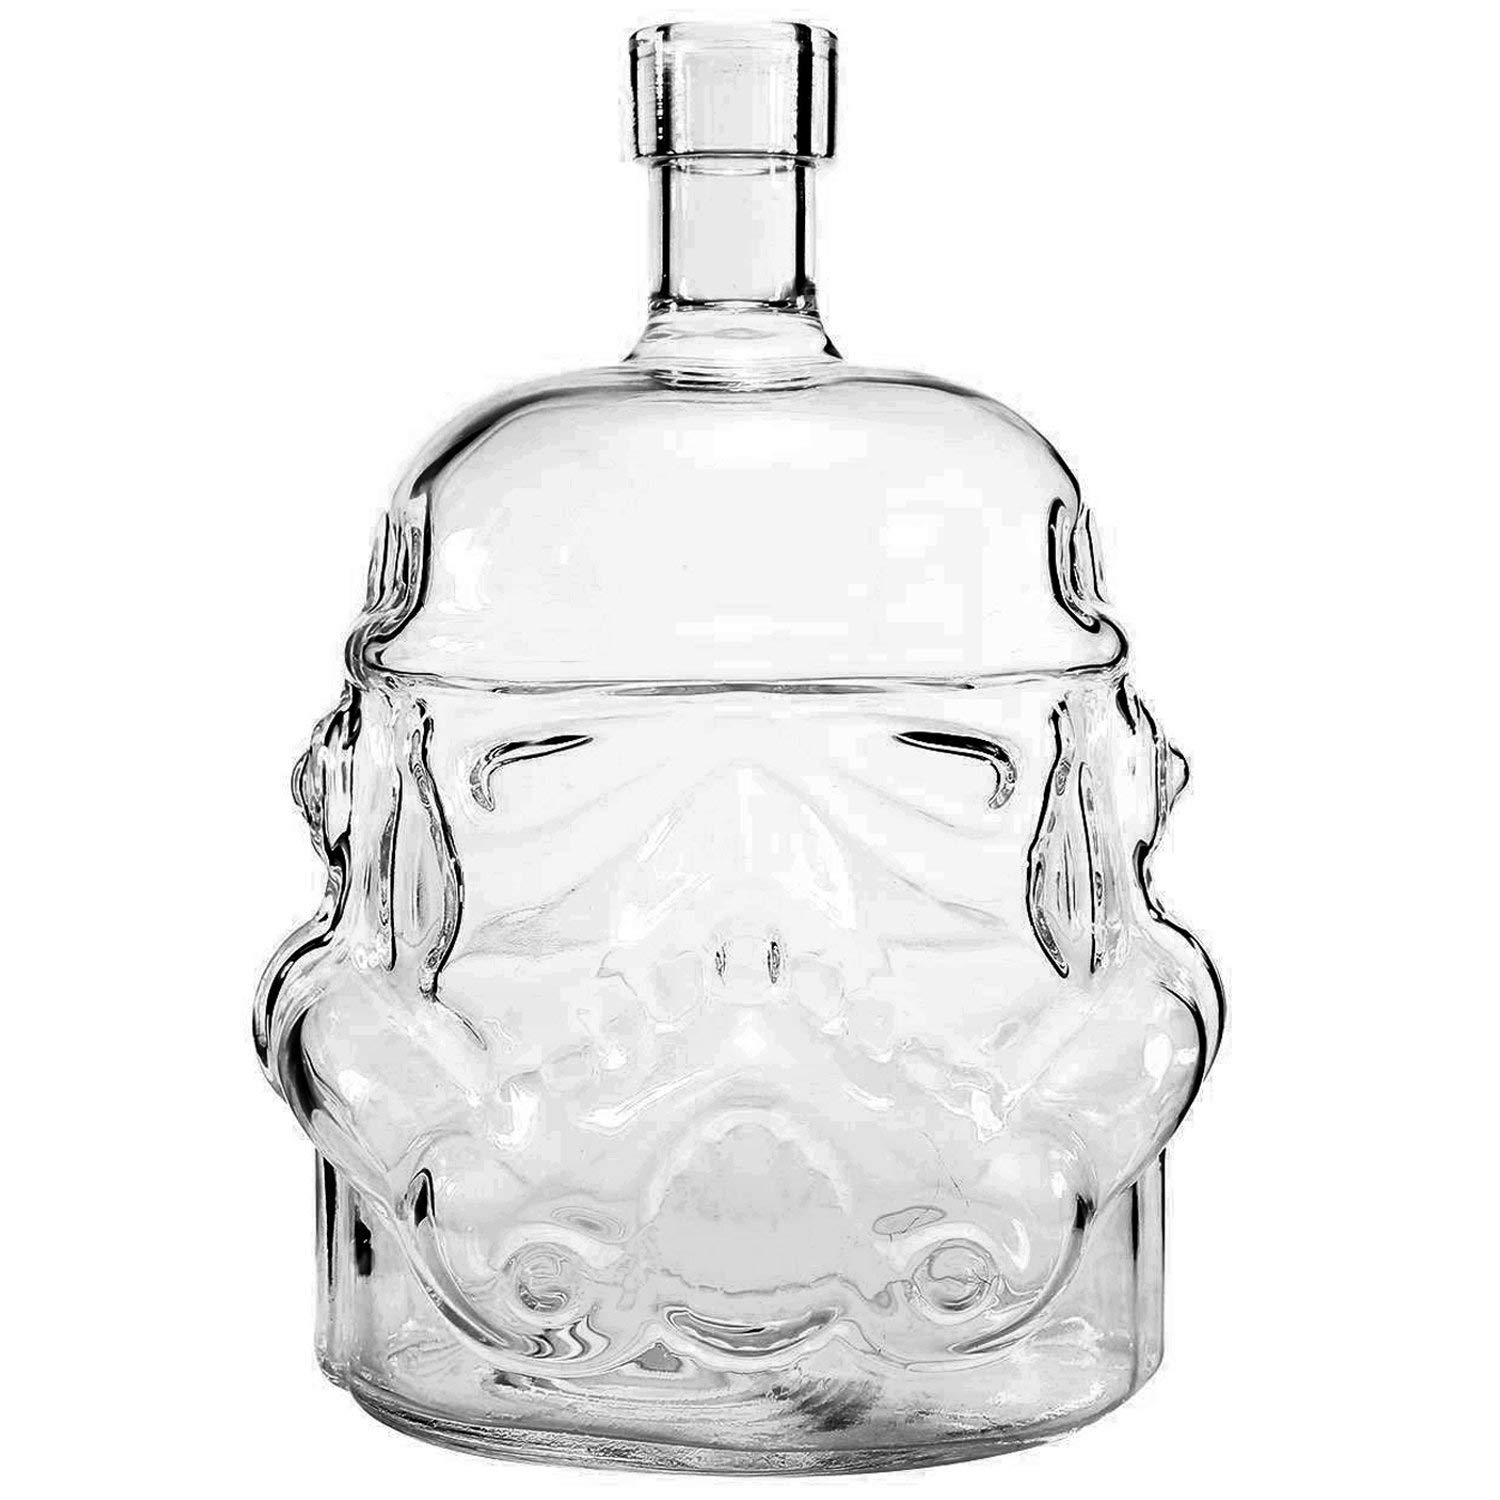 AUTHOME Transparent Creative Star Wars 700ml Whiskey Flask Carafe Decanter,Stormtrooper Glass Bottle ,Wine Decanters,Whiskey Carafe,Awakens Helmet Glass Cup Heat-Resistance Cup for Whisky, Beer, Brand